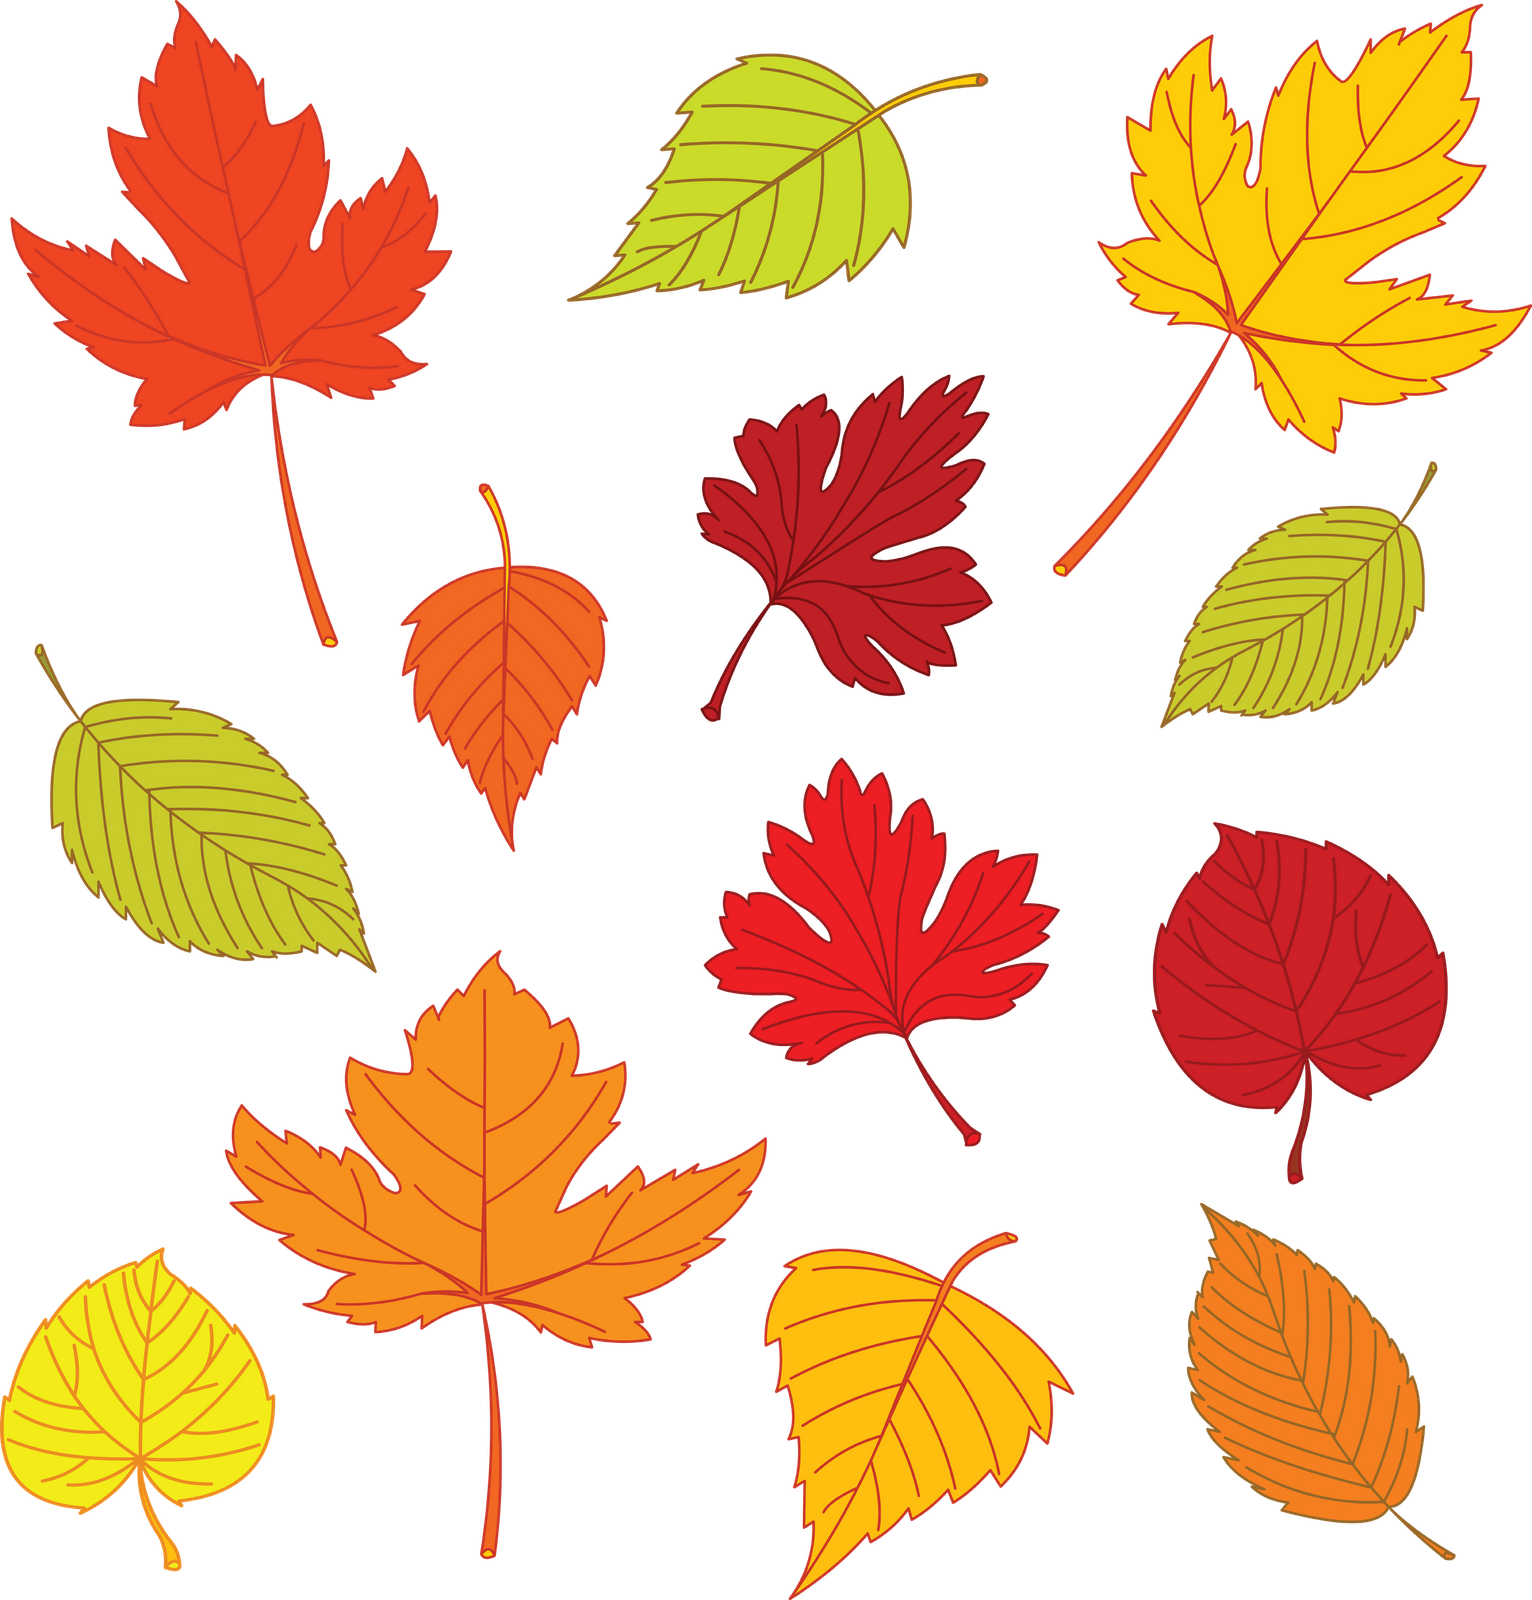 can you find the leaves that match use crayola crayons colored